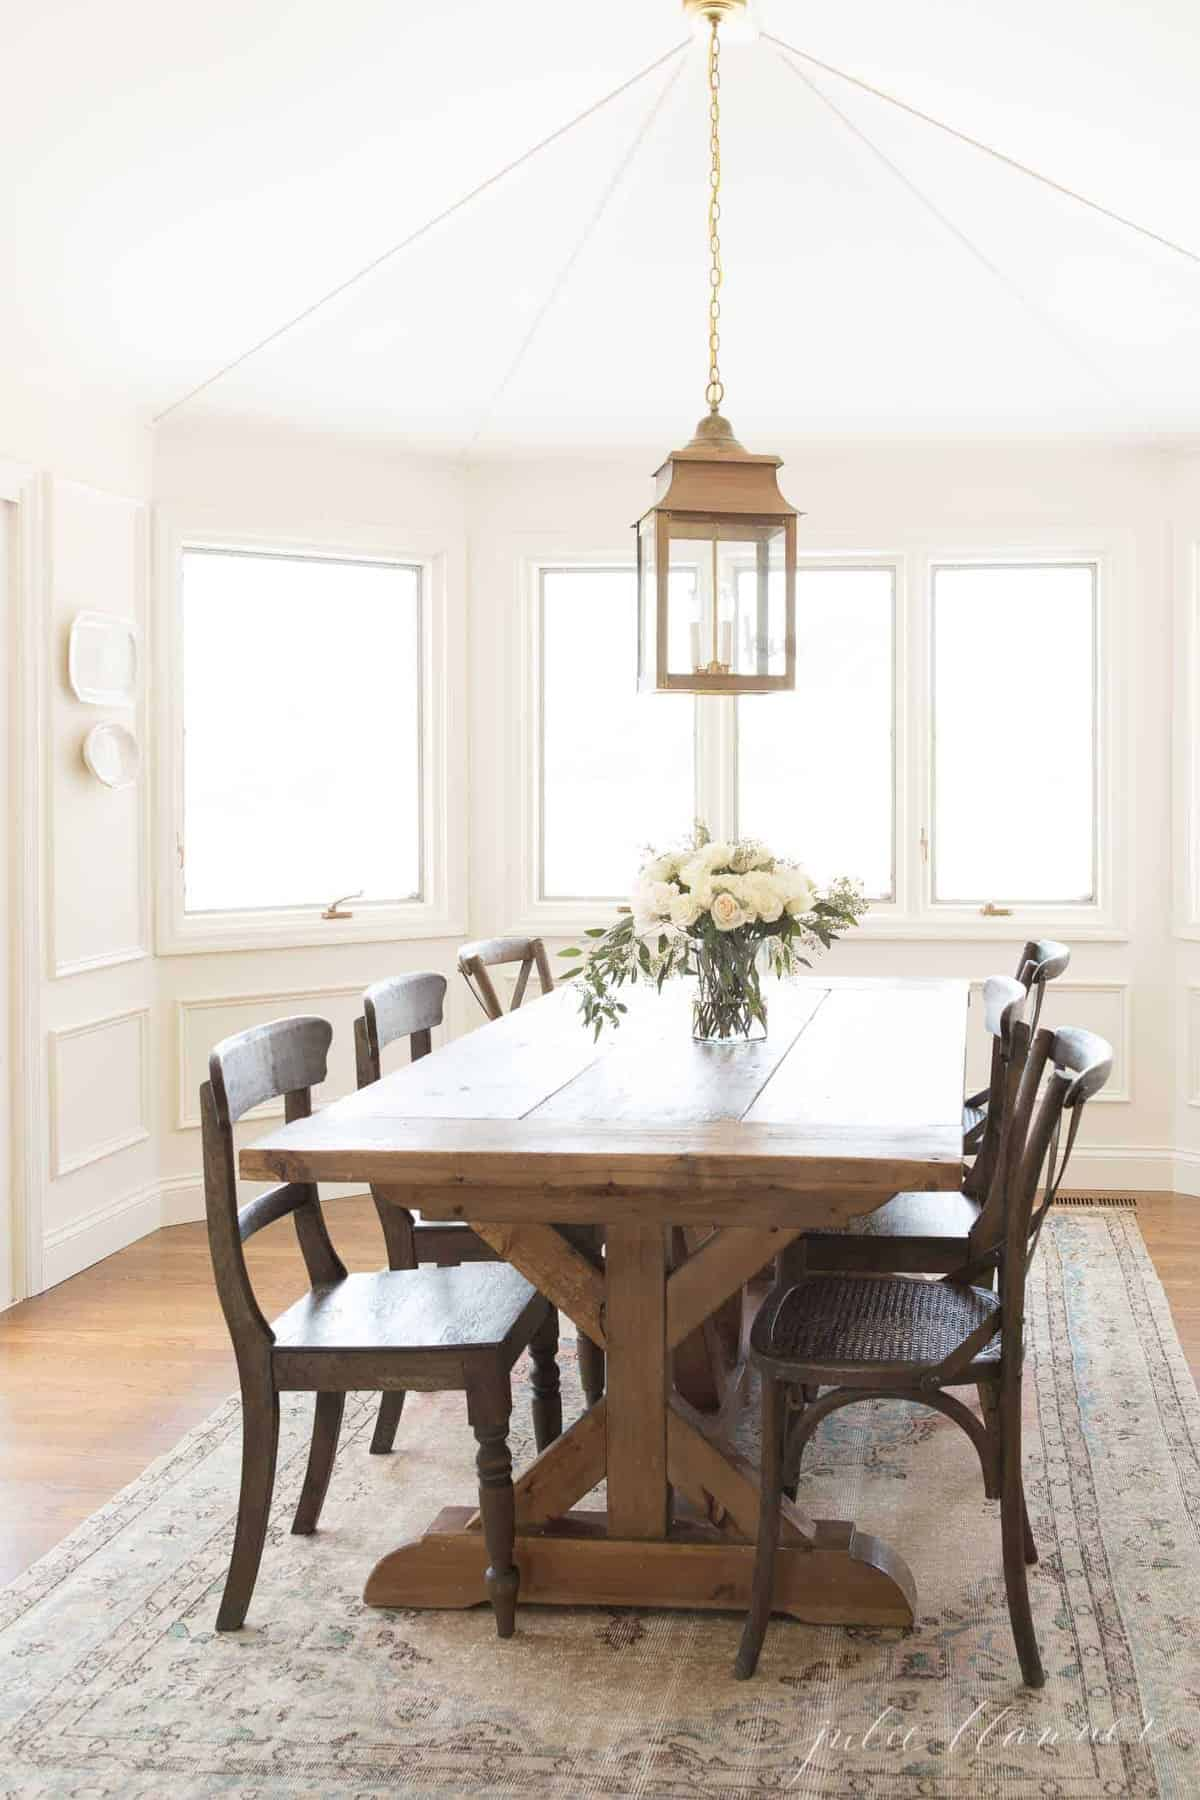 A white dining room with a farm table and a vintage kilim style Turkish rug.